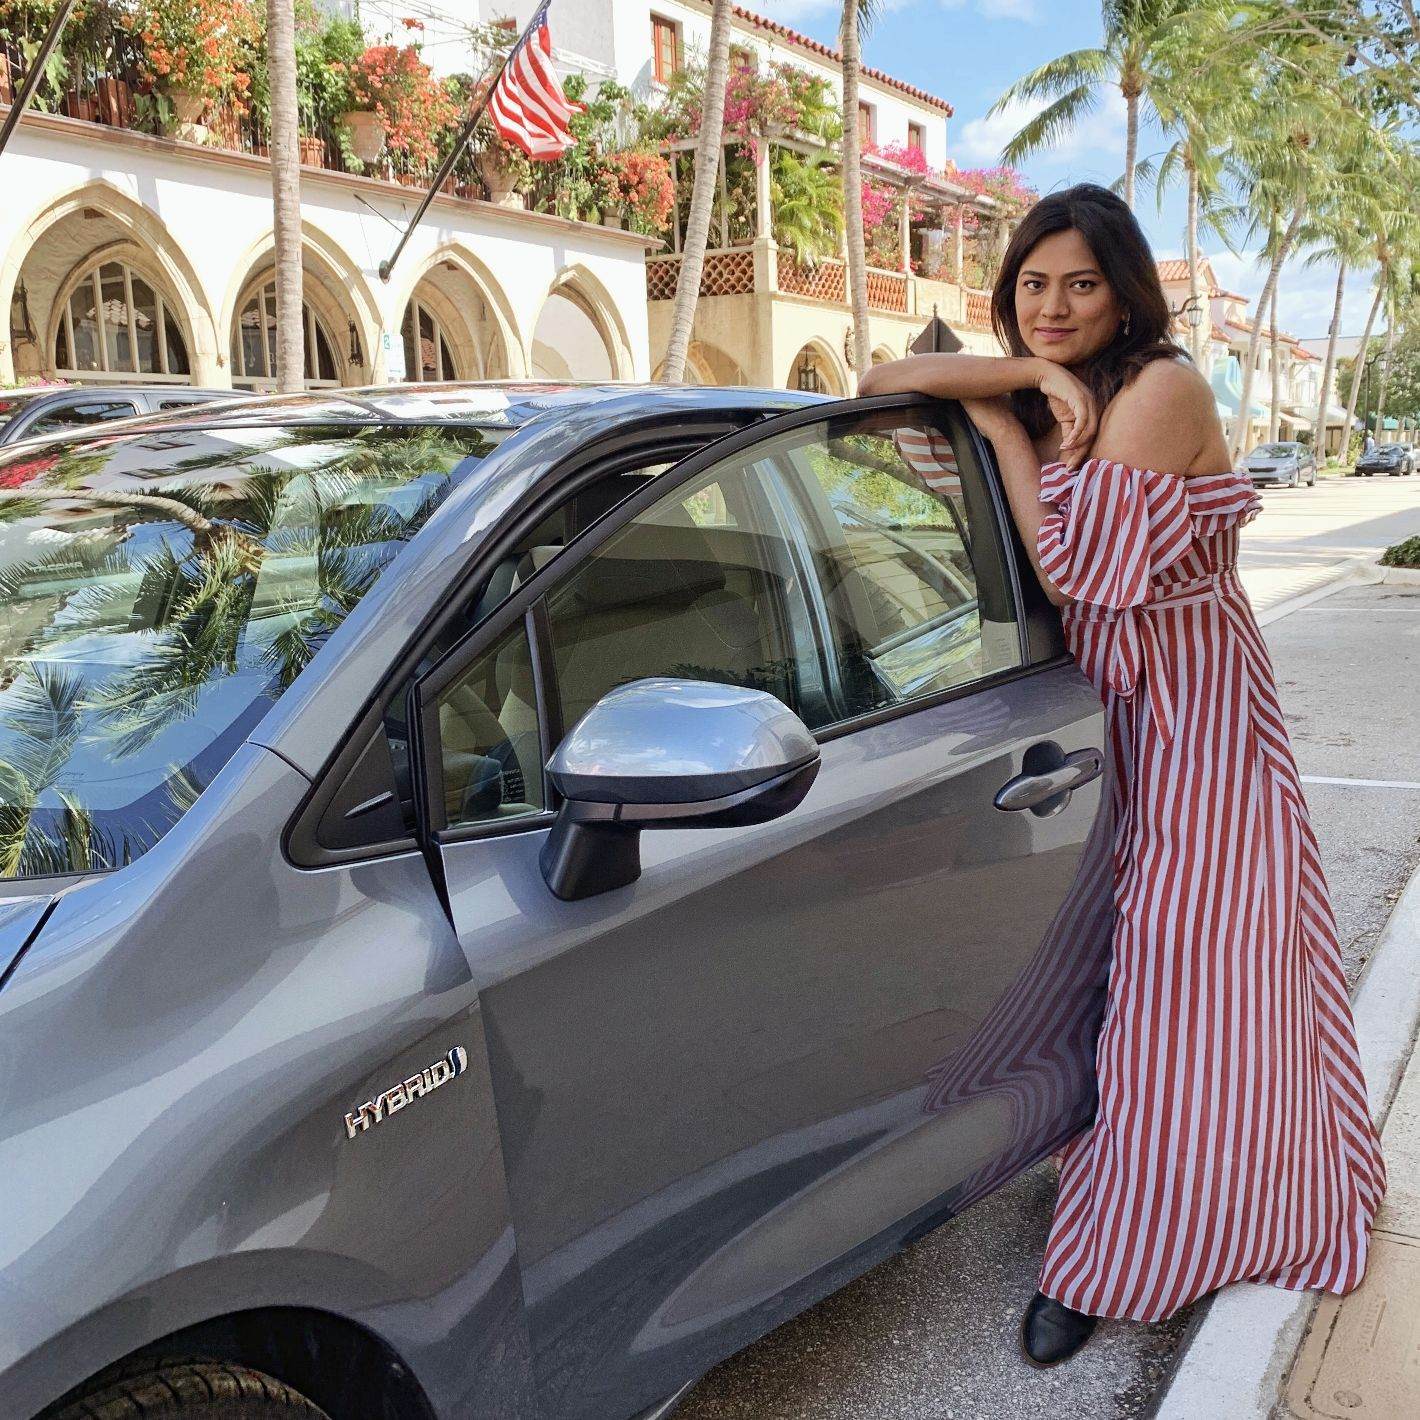 Miami Blogger Afroza Khan Wearing Red & White Stripe Dress Next to Toyota Hybrid